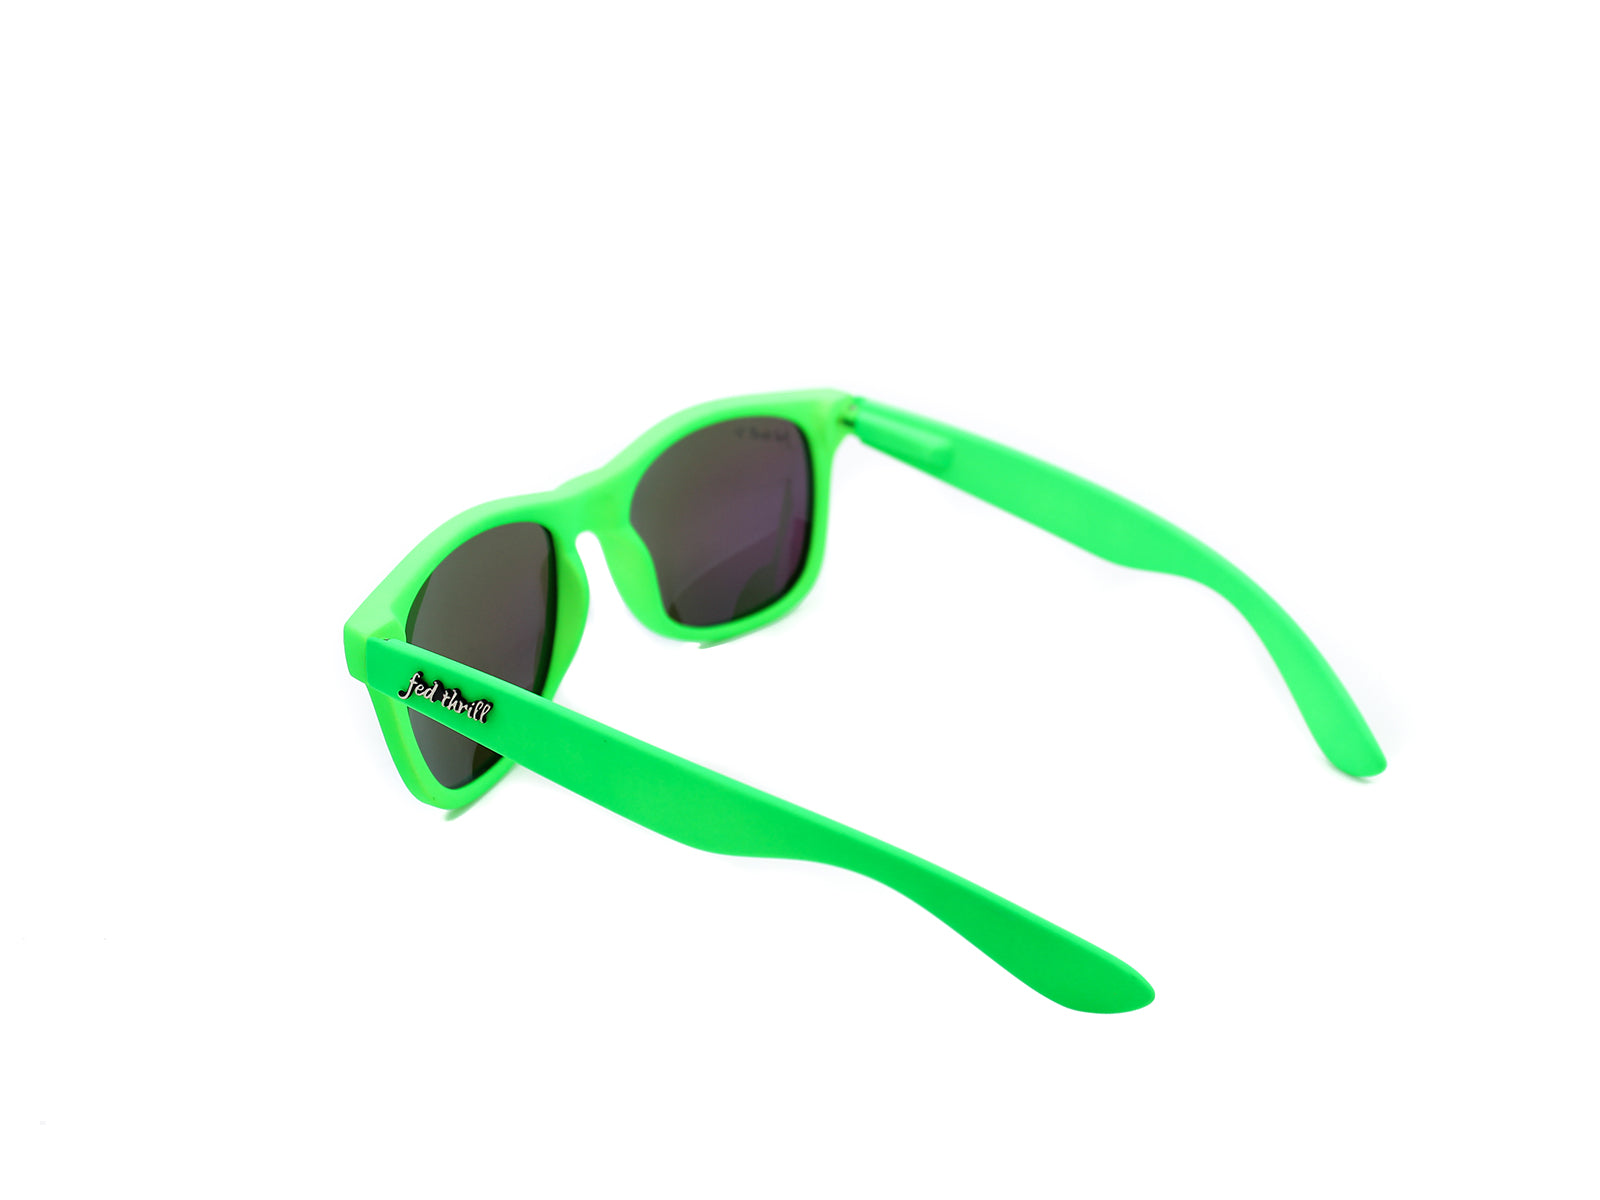 Fultons - Ryleighs: Matte Neon Green / Mirrored Green Polarized